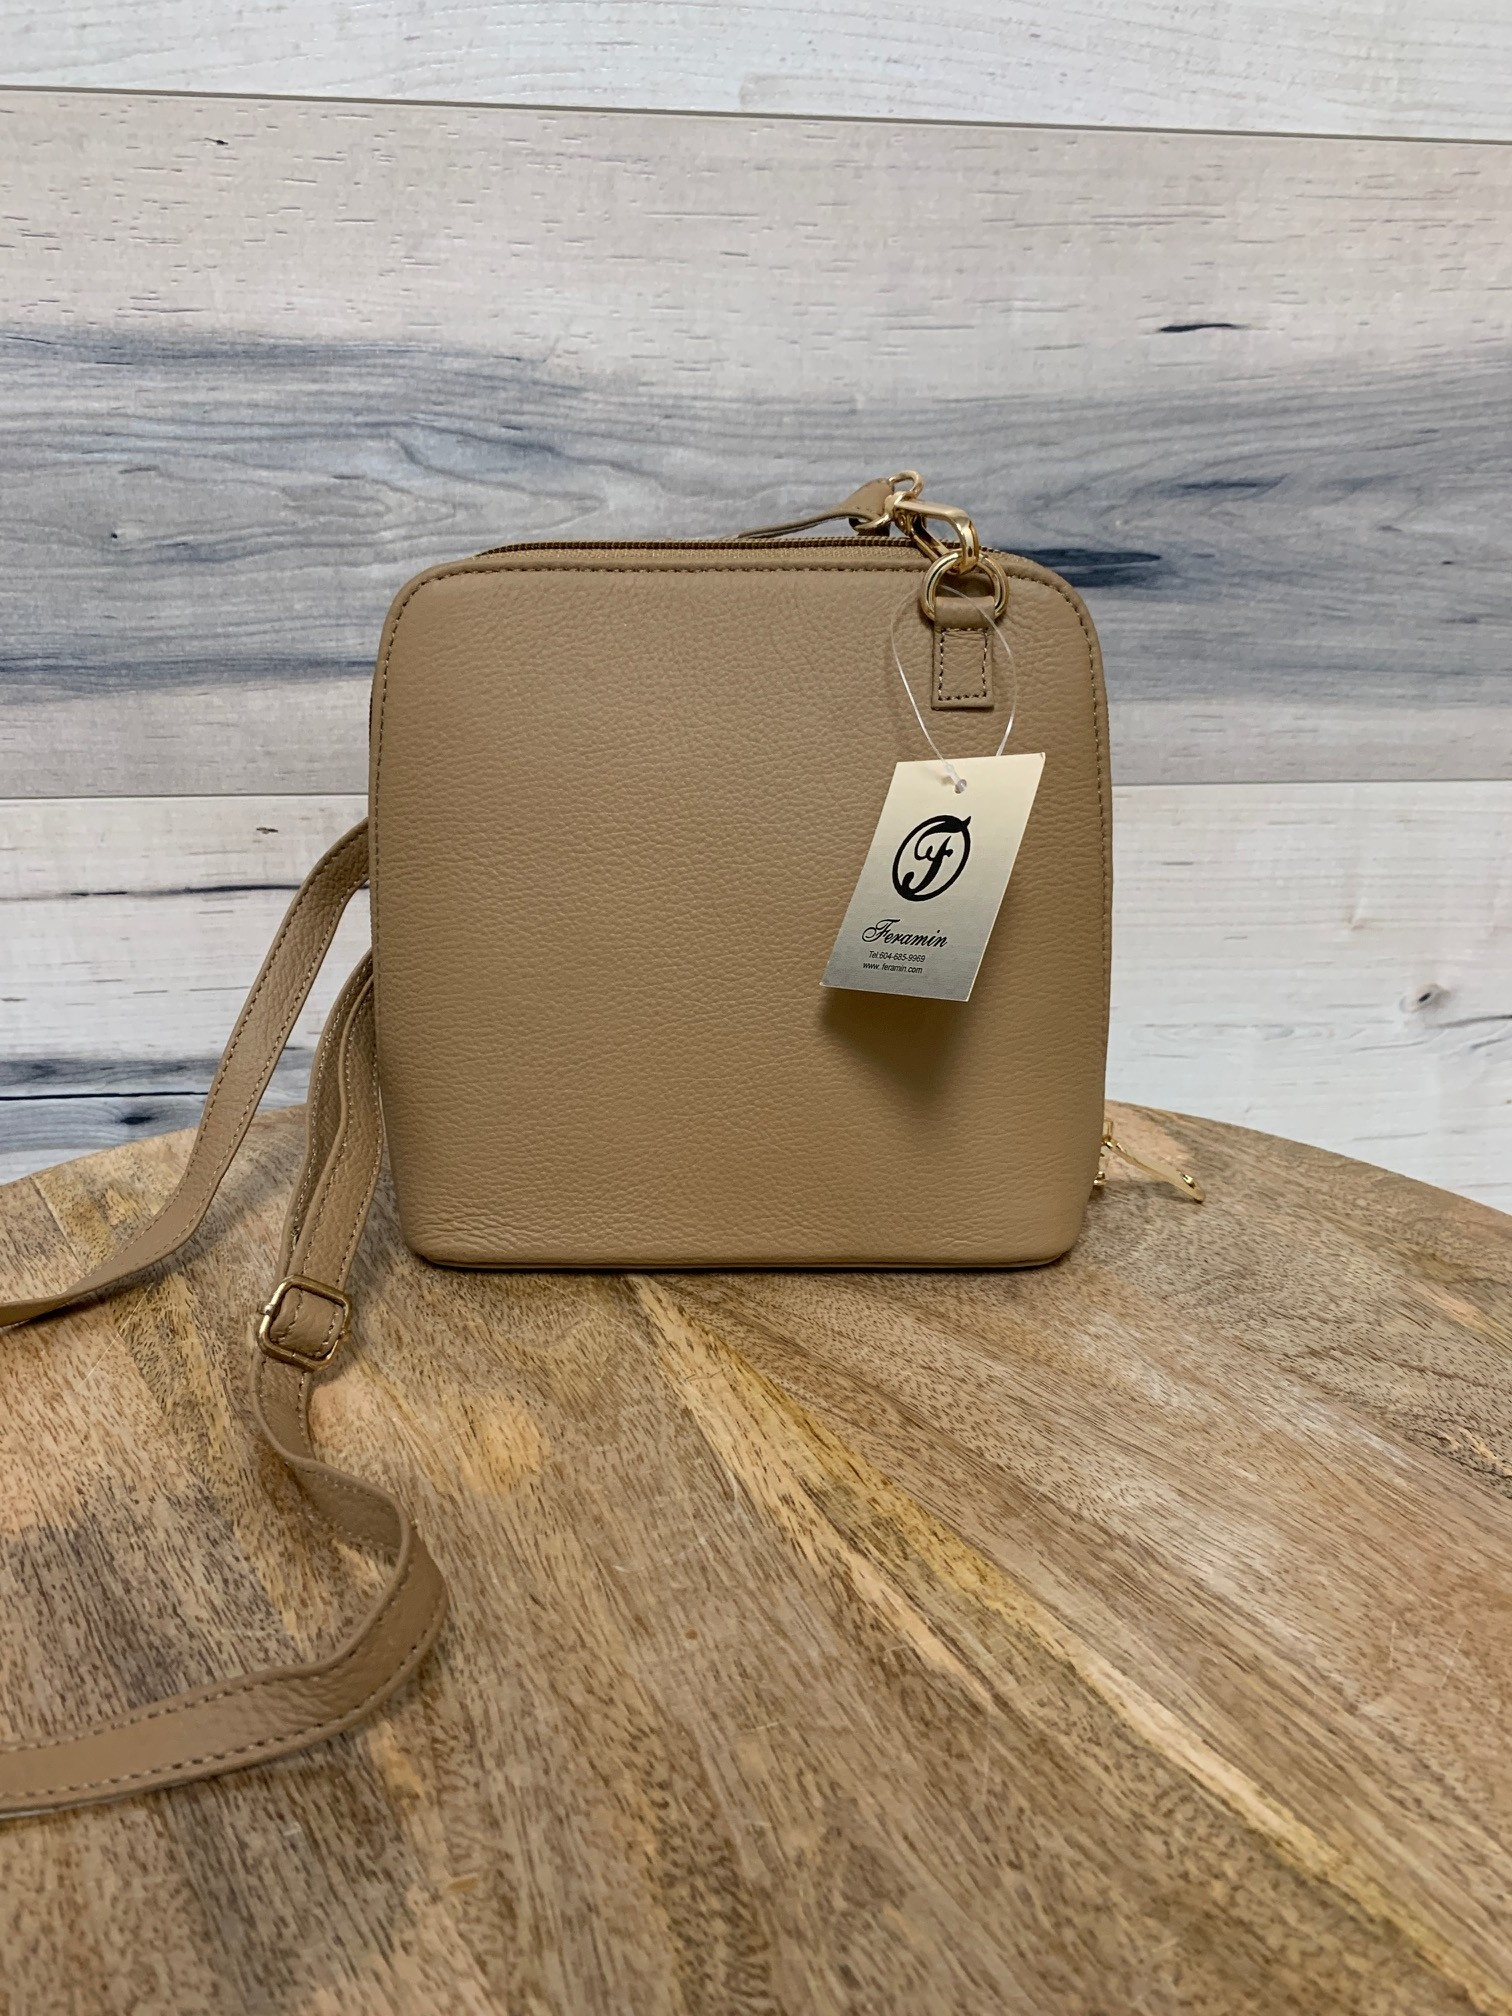 Small Structured Cross-Body Bag - Caramel